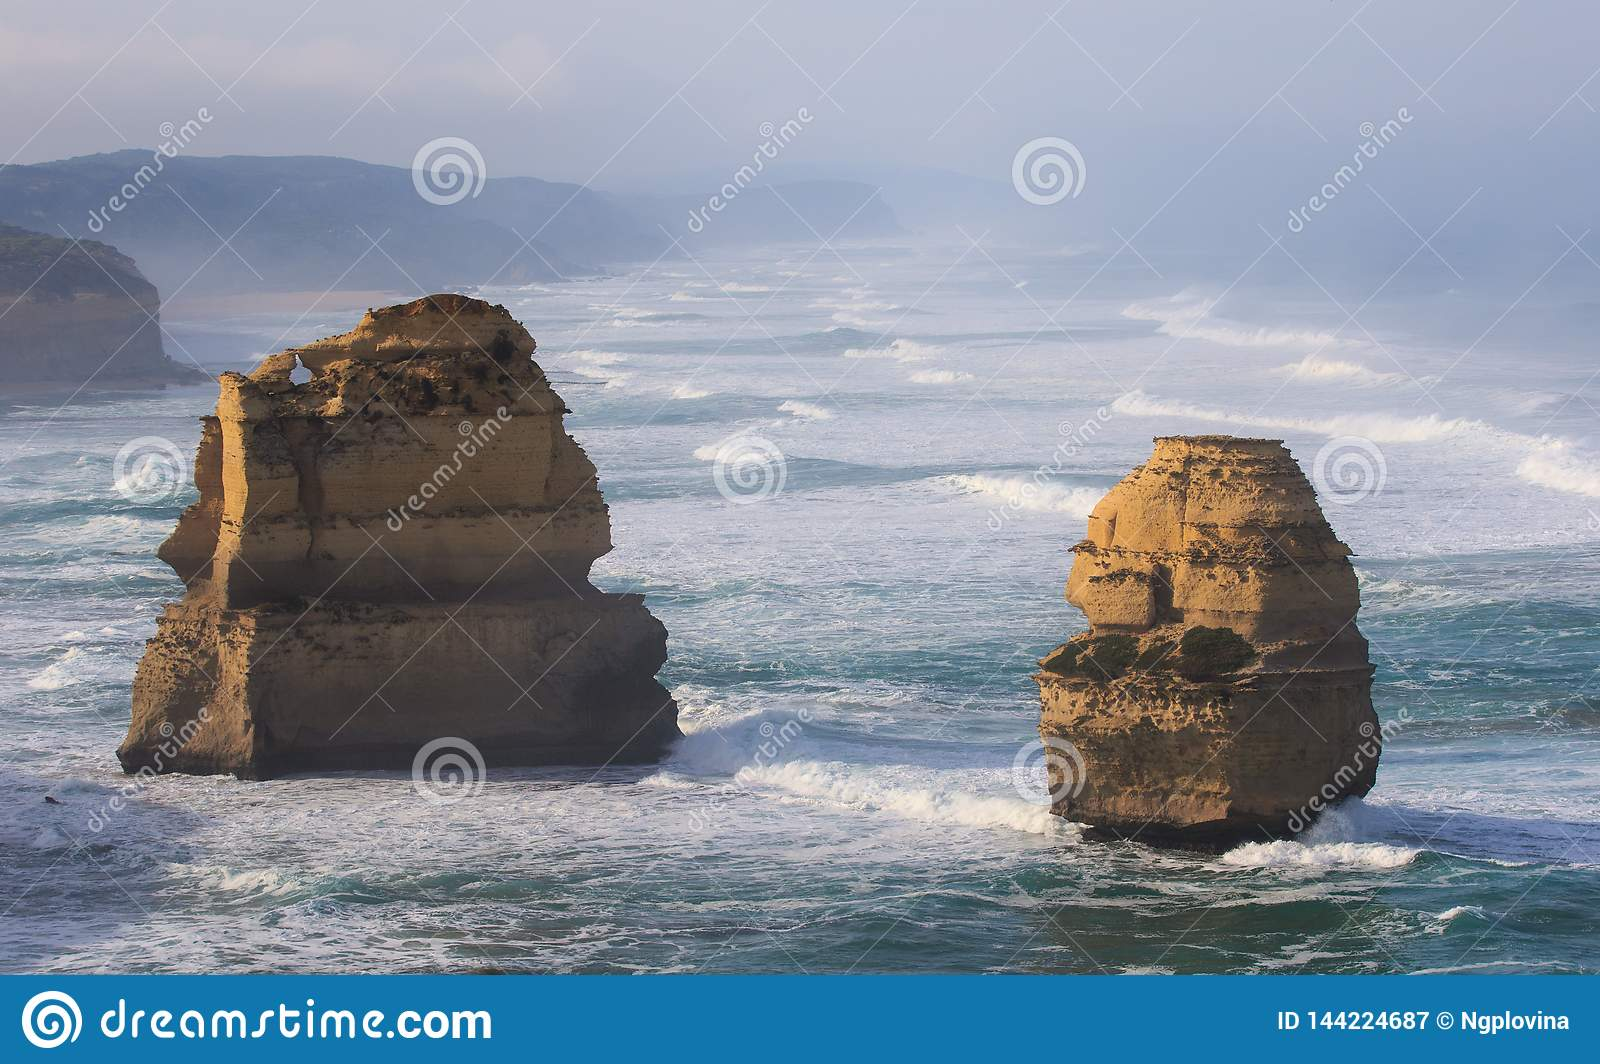 The Twelve Apostles along the Great Ocean Road, Victoria, Australia. Photographed at sunrise. Dawn fog.